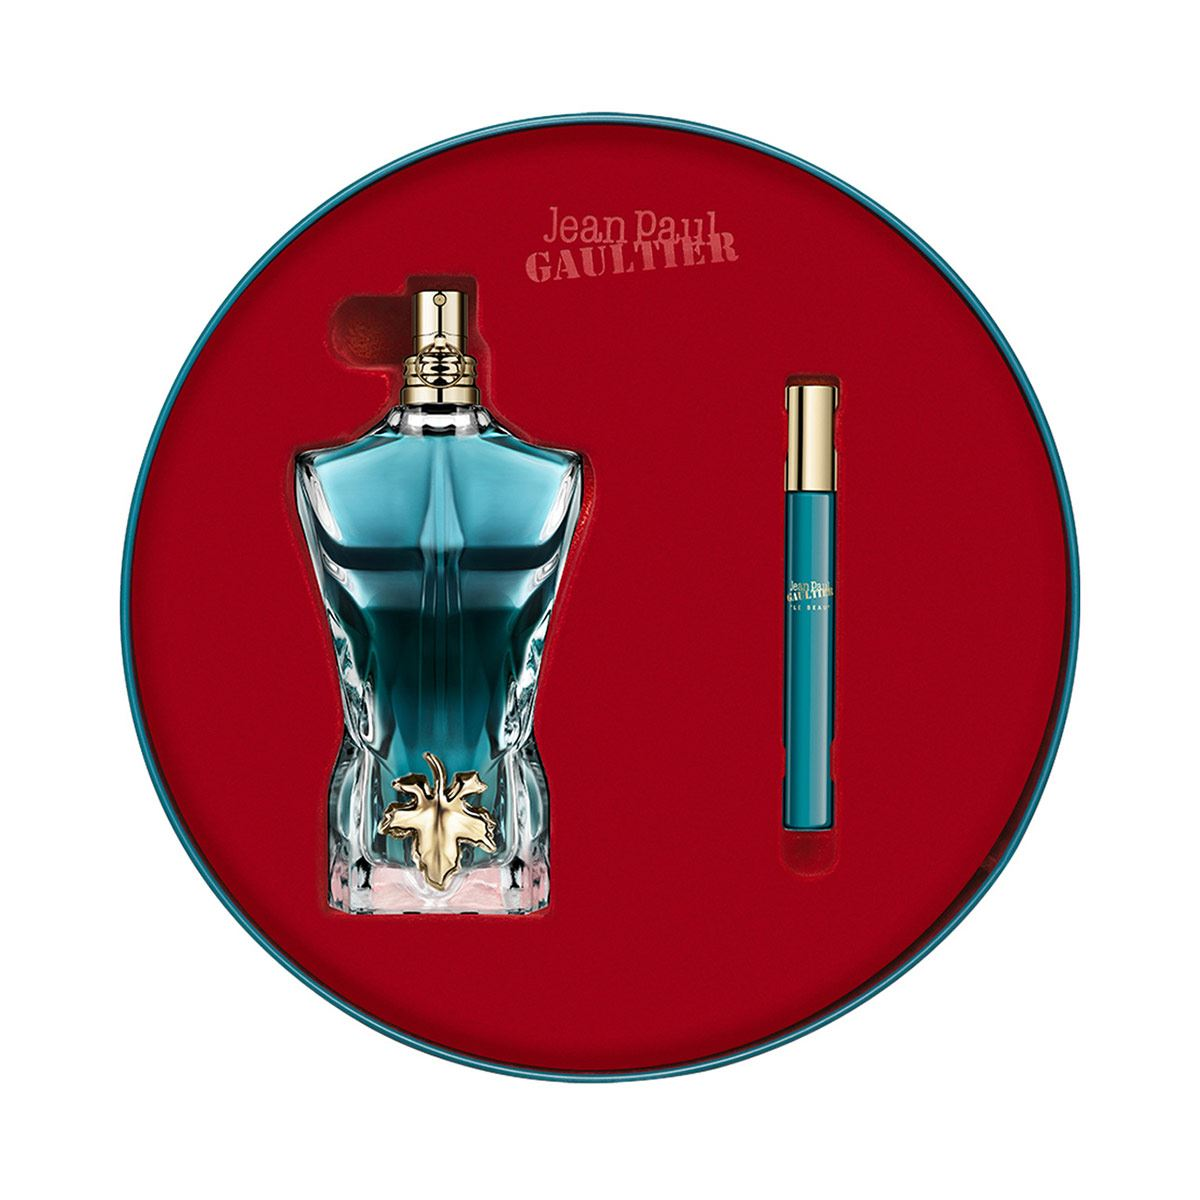 Set para caballero, Jean Paul Gaultier, Le beau, EDT125ML + travel spray 10ML